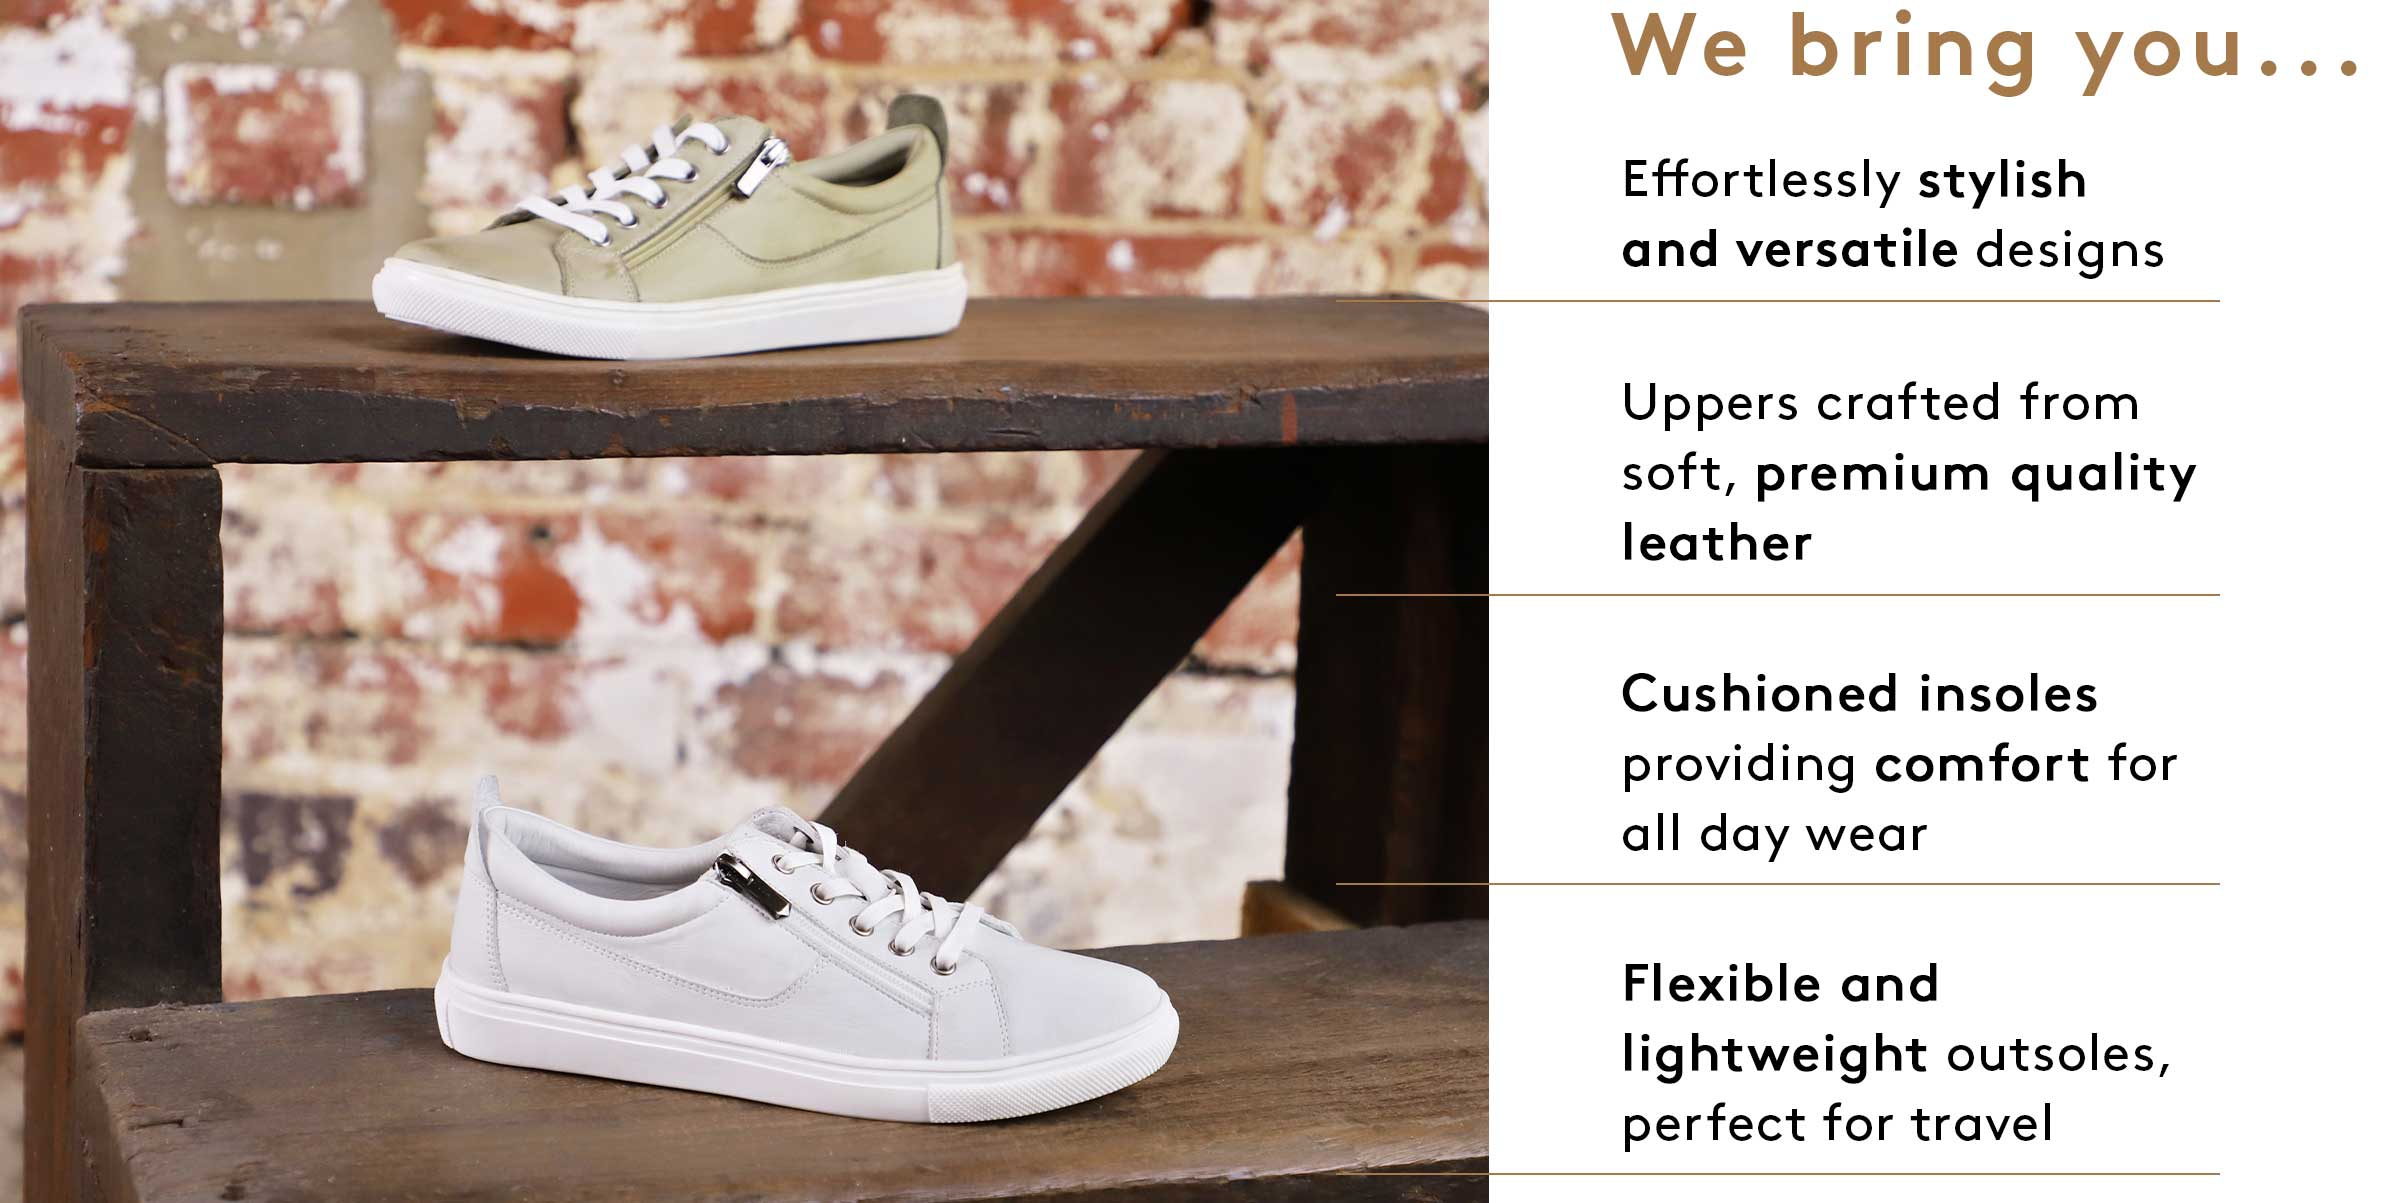 Our premium quality leather Airflex range is designed to provide lasting comfort and effortless style for all day wear.